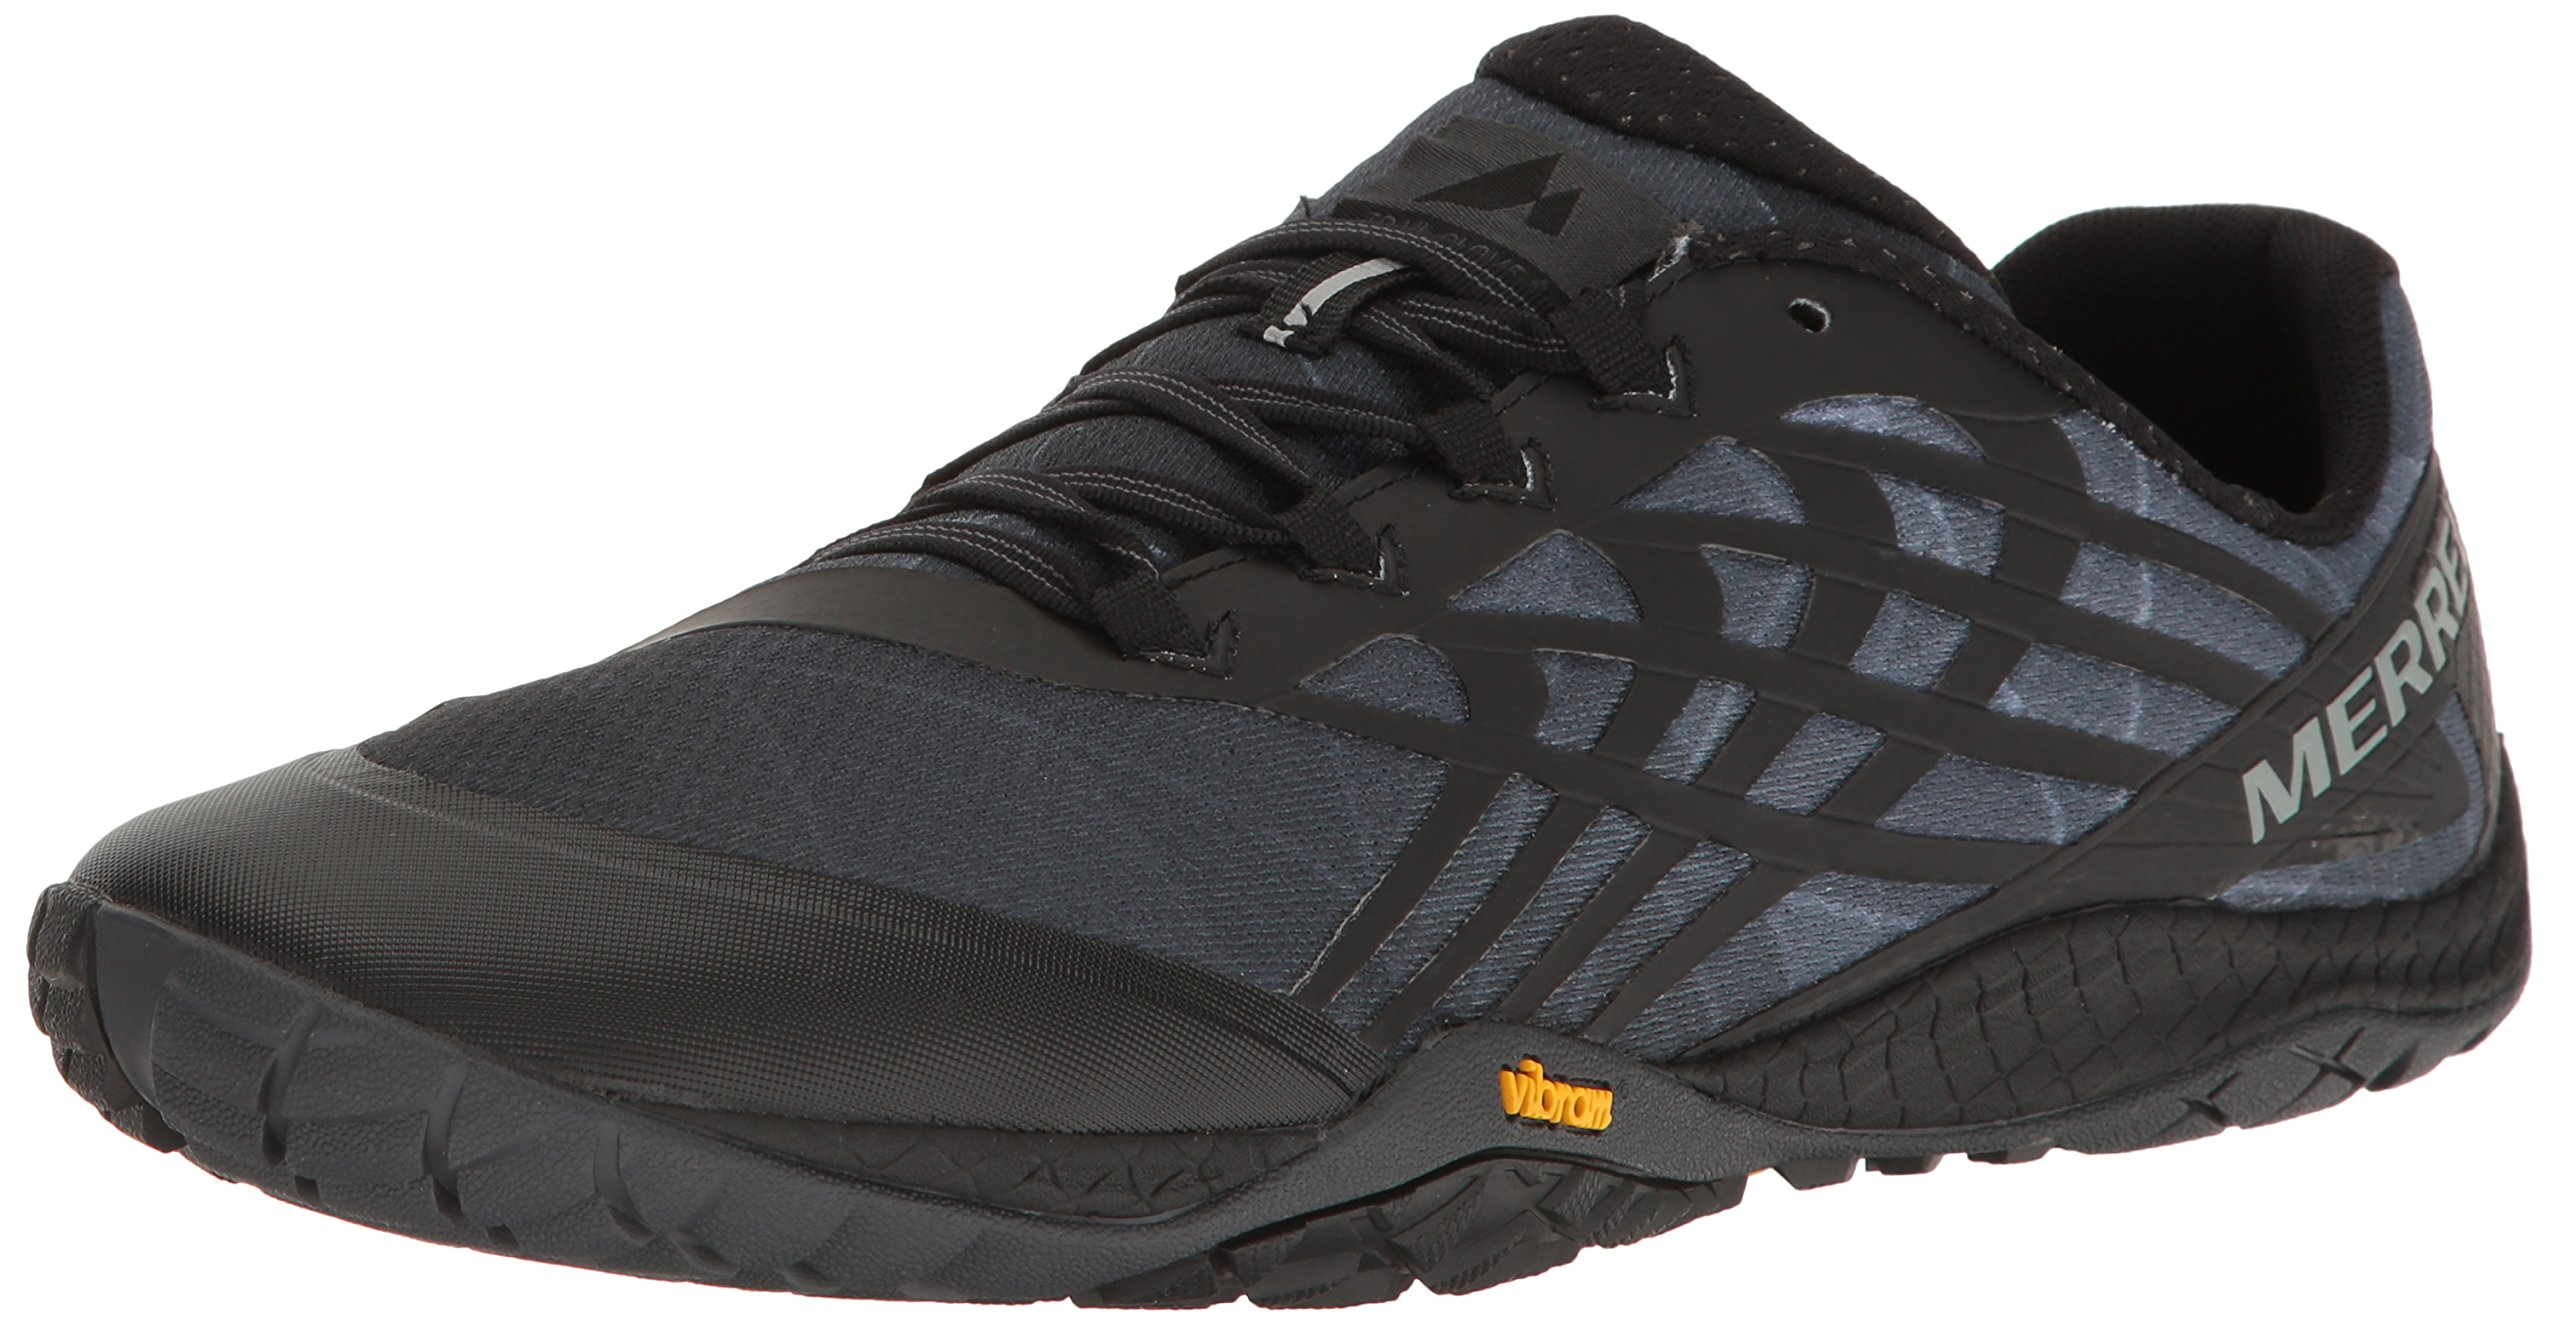 Merrell Men's Glove 4 Trail Runner, Black, 11.5 M US